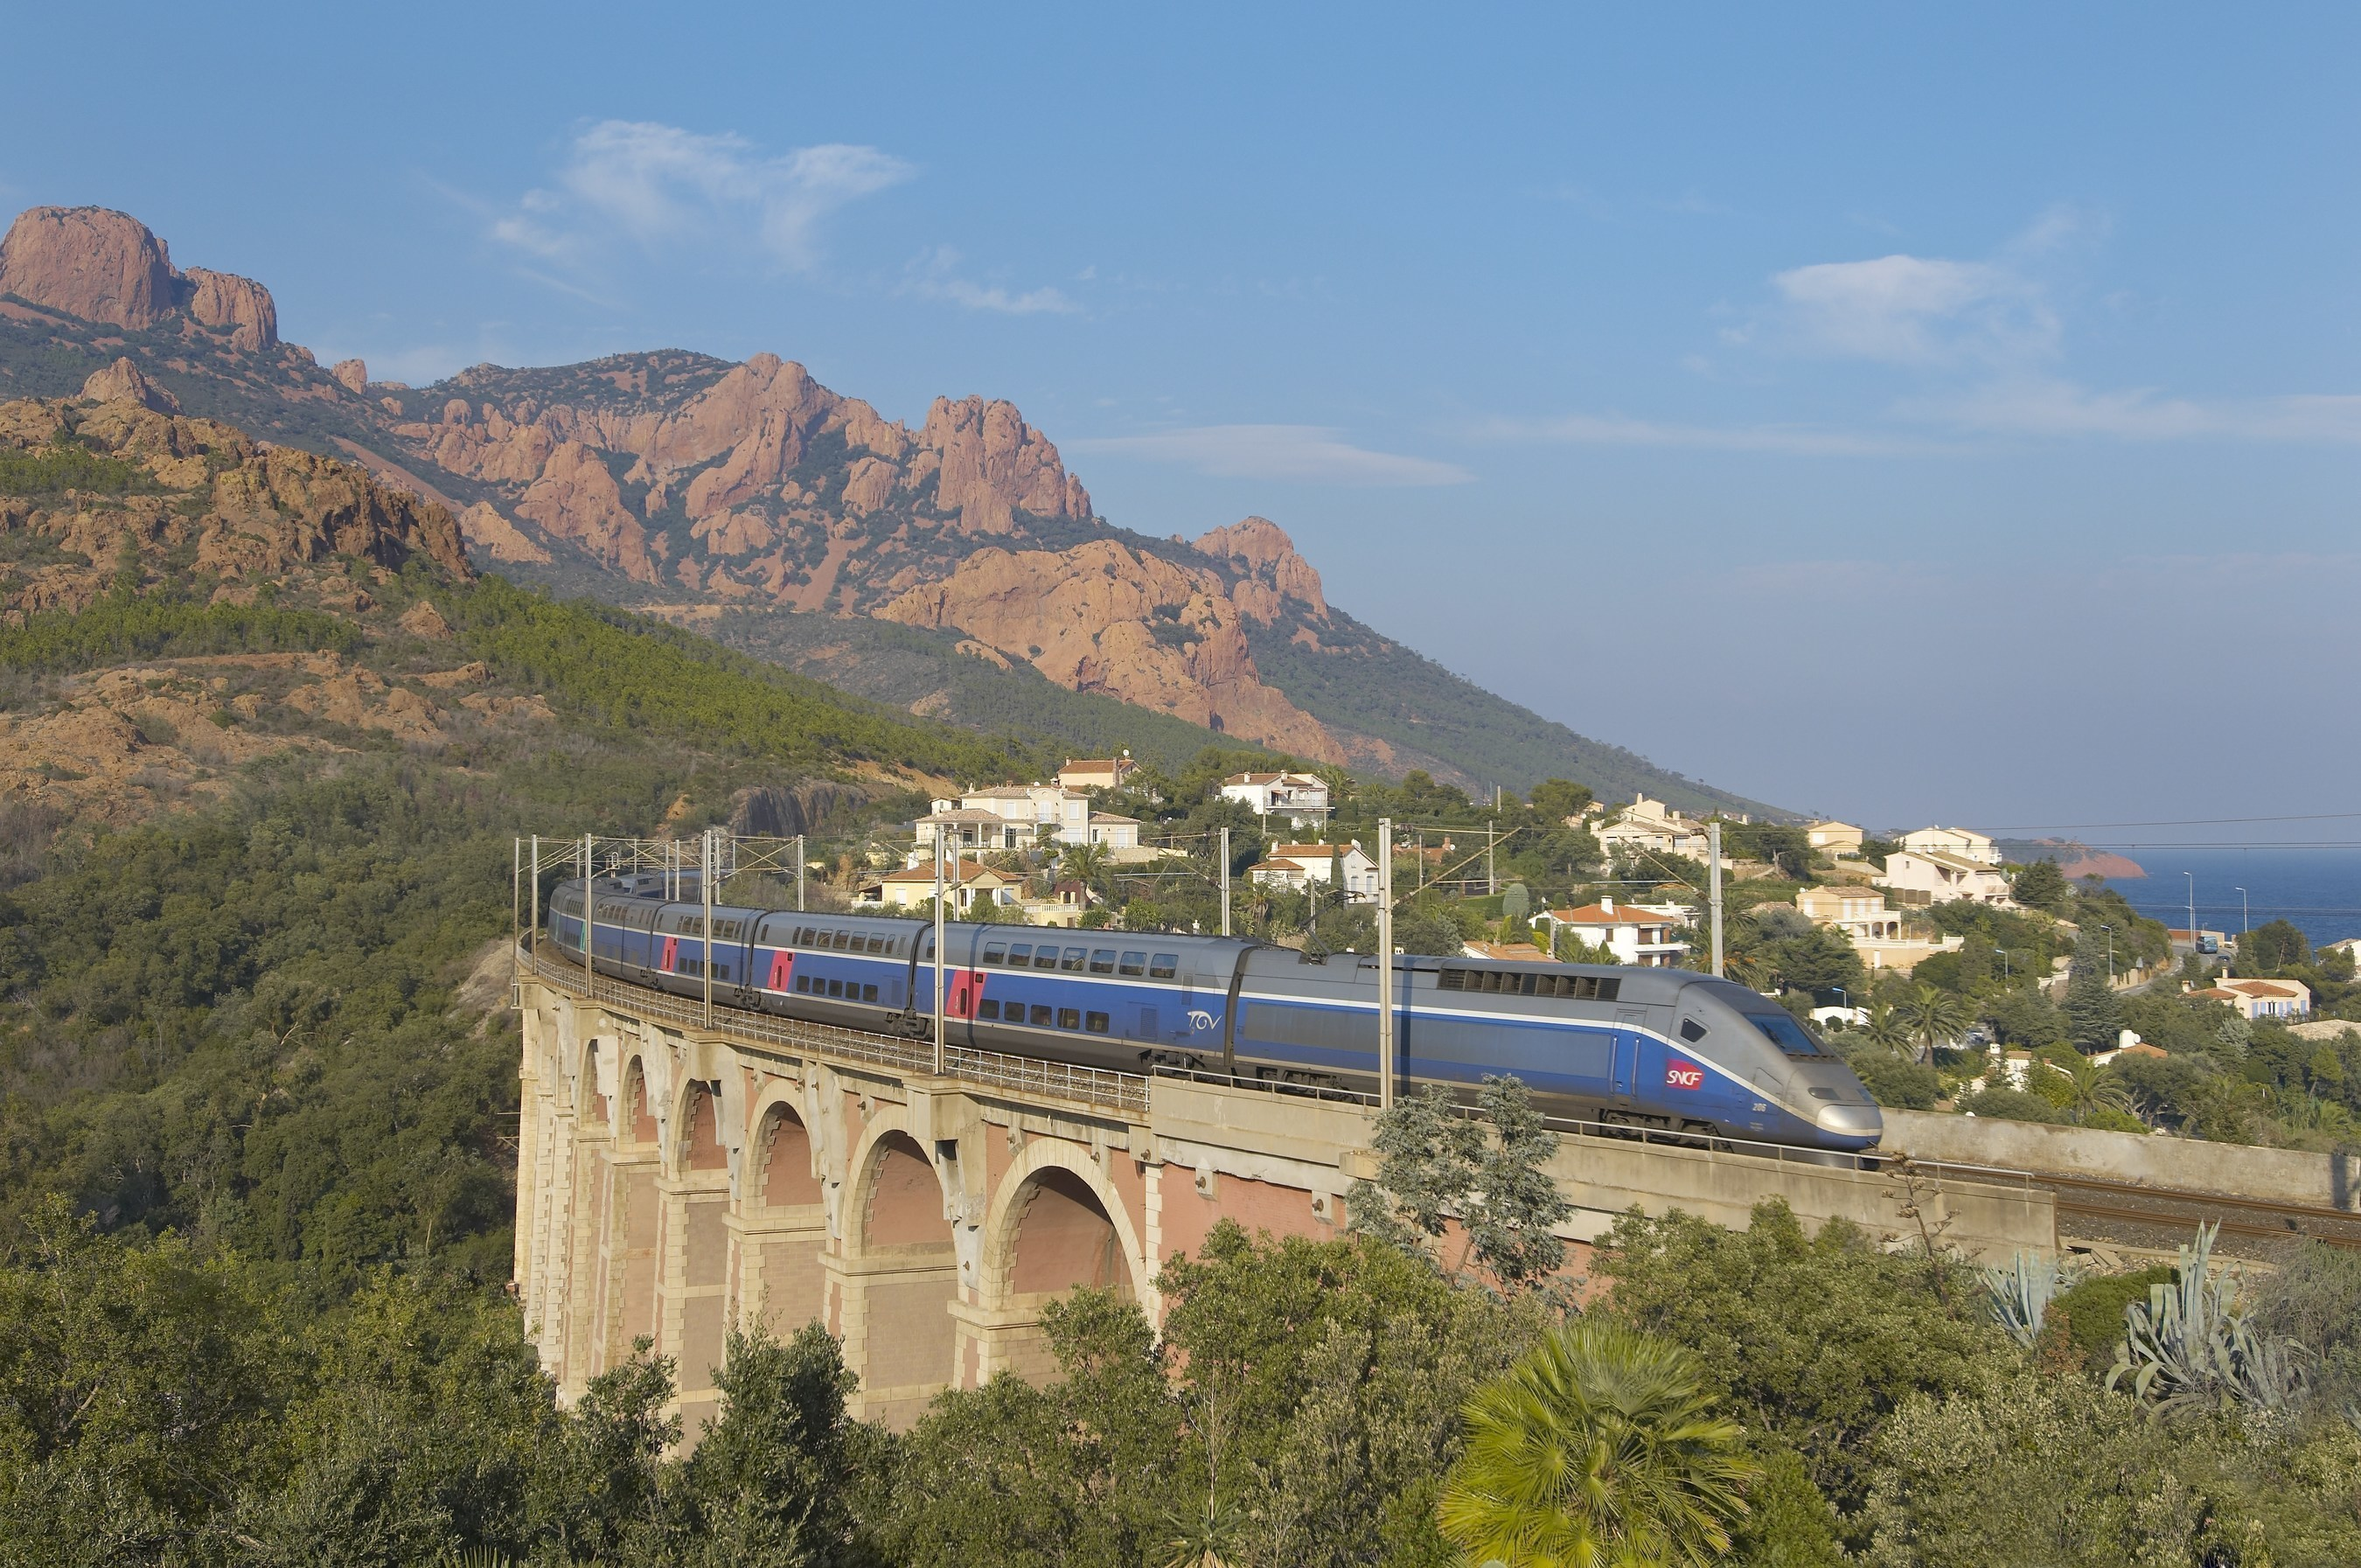 See more of France for less with the France Rail Pass from RailEurope.com